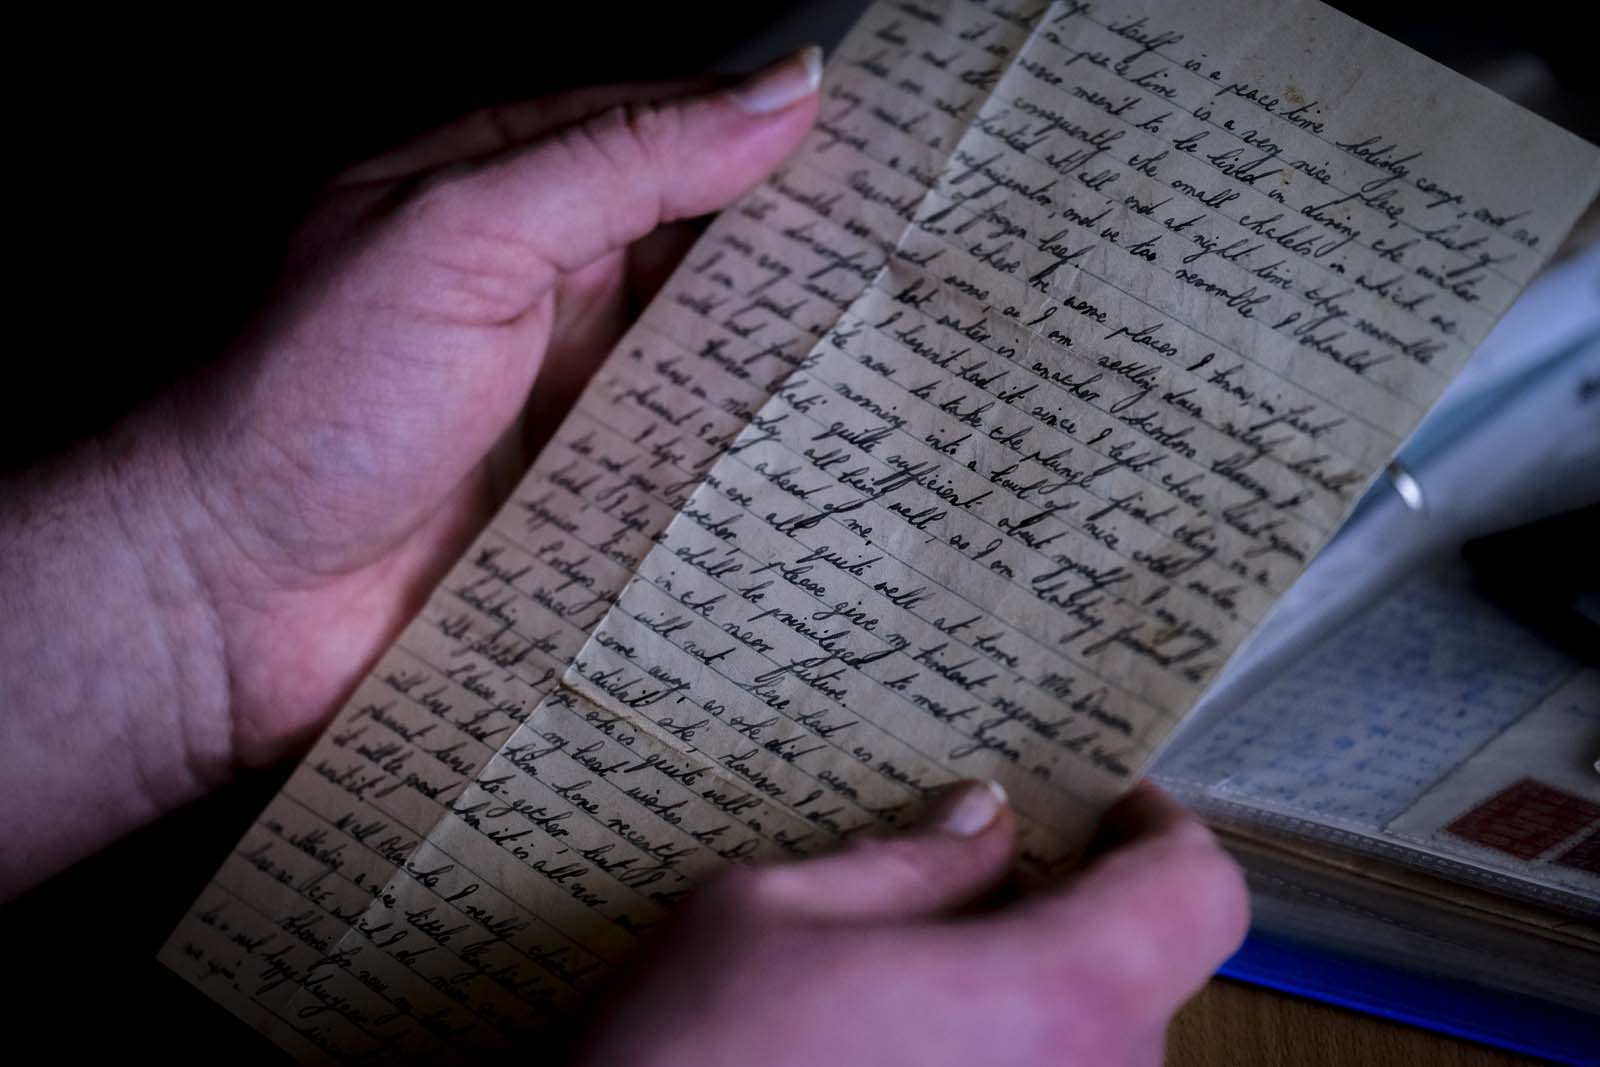 photo of a handwritten letter held in someone's hands